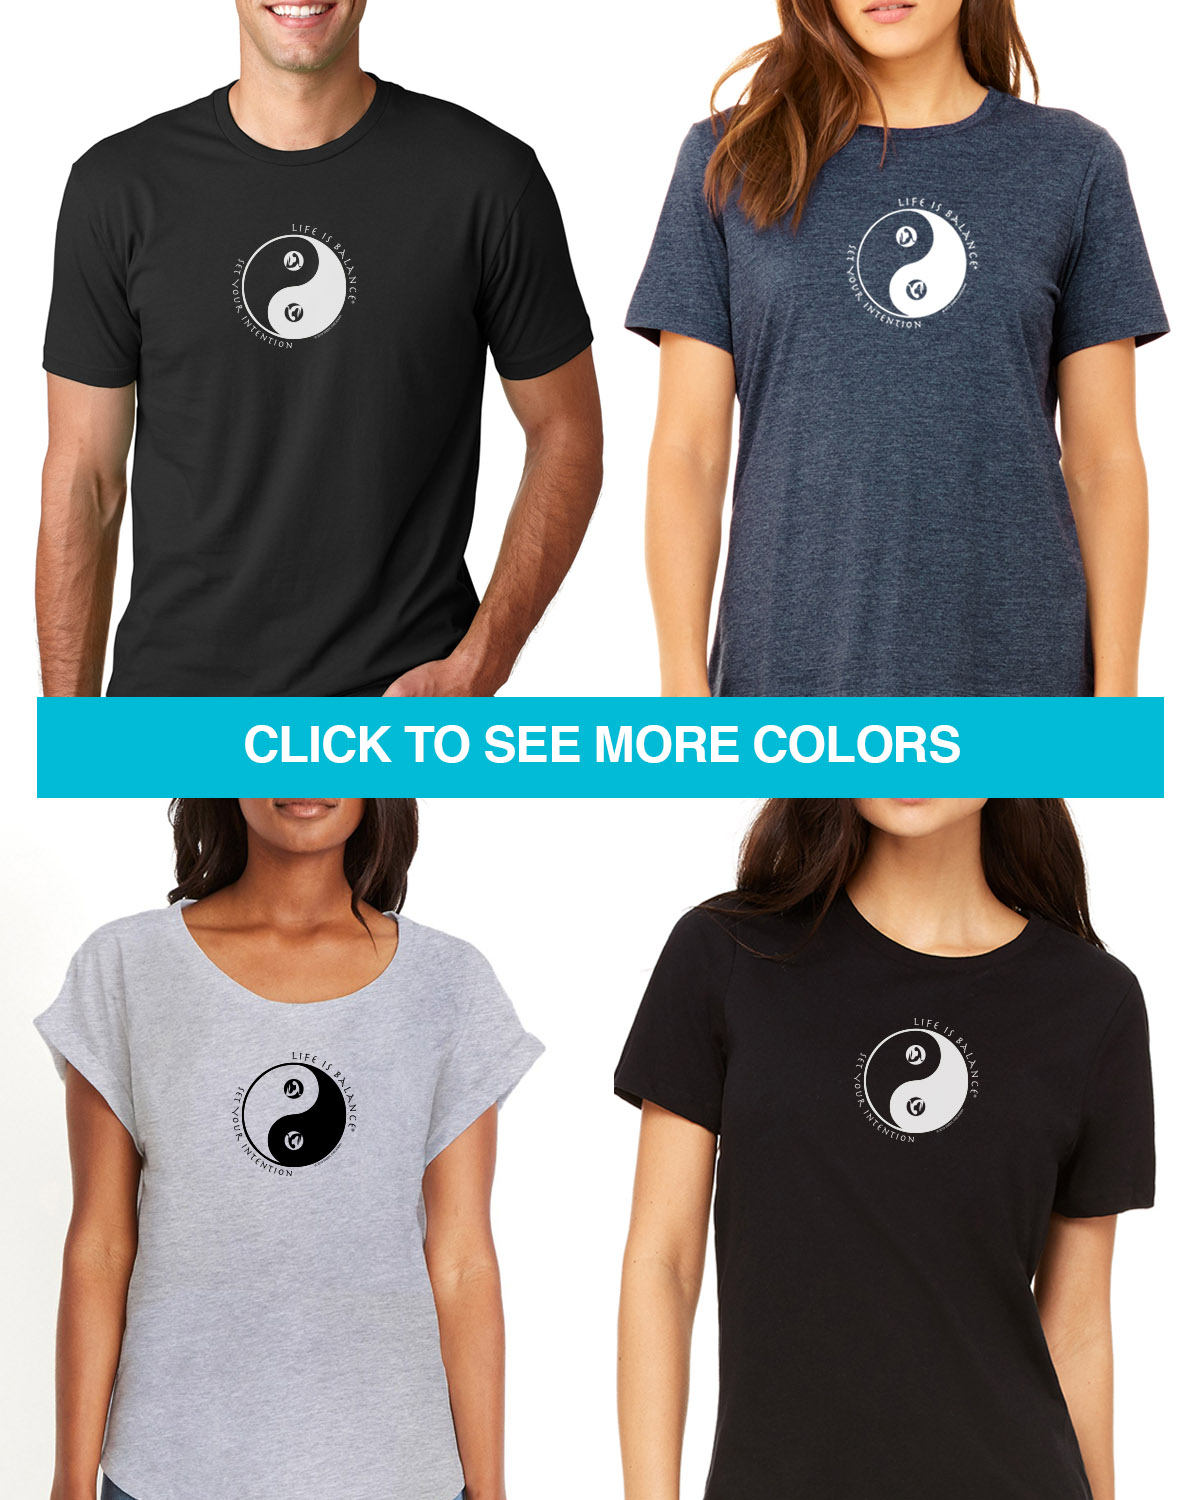 Inspirational short sleeve yoga t-shirts in both women's and men's styles